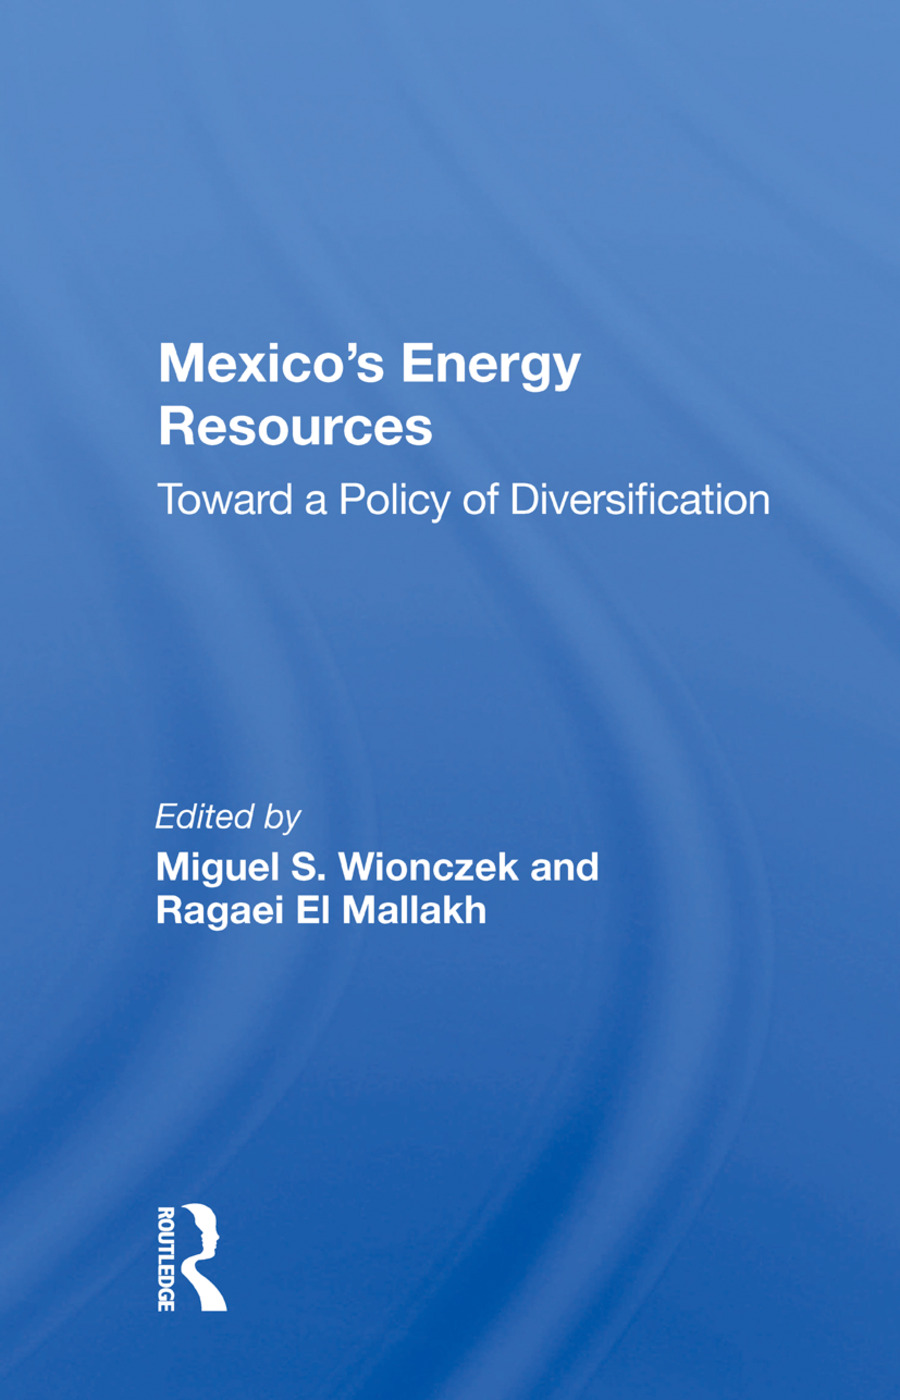 Mexico's Energy Resources: Toward A Policy Of Diversification book cover